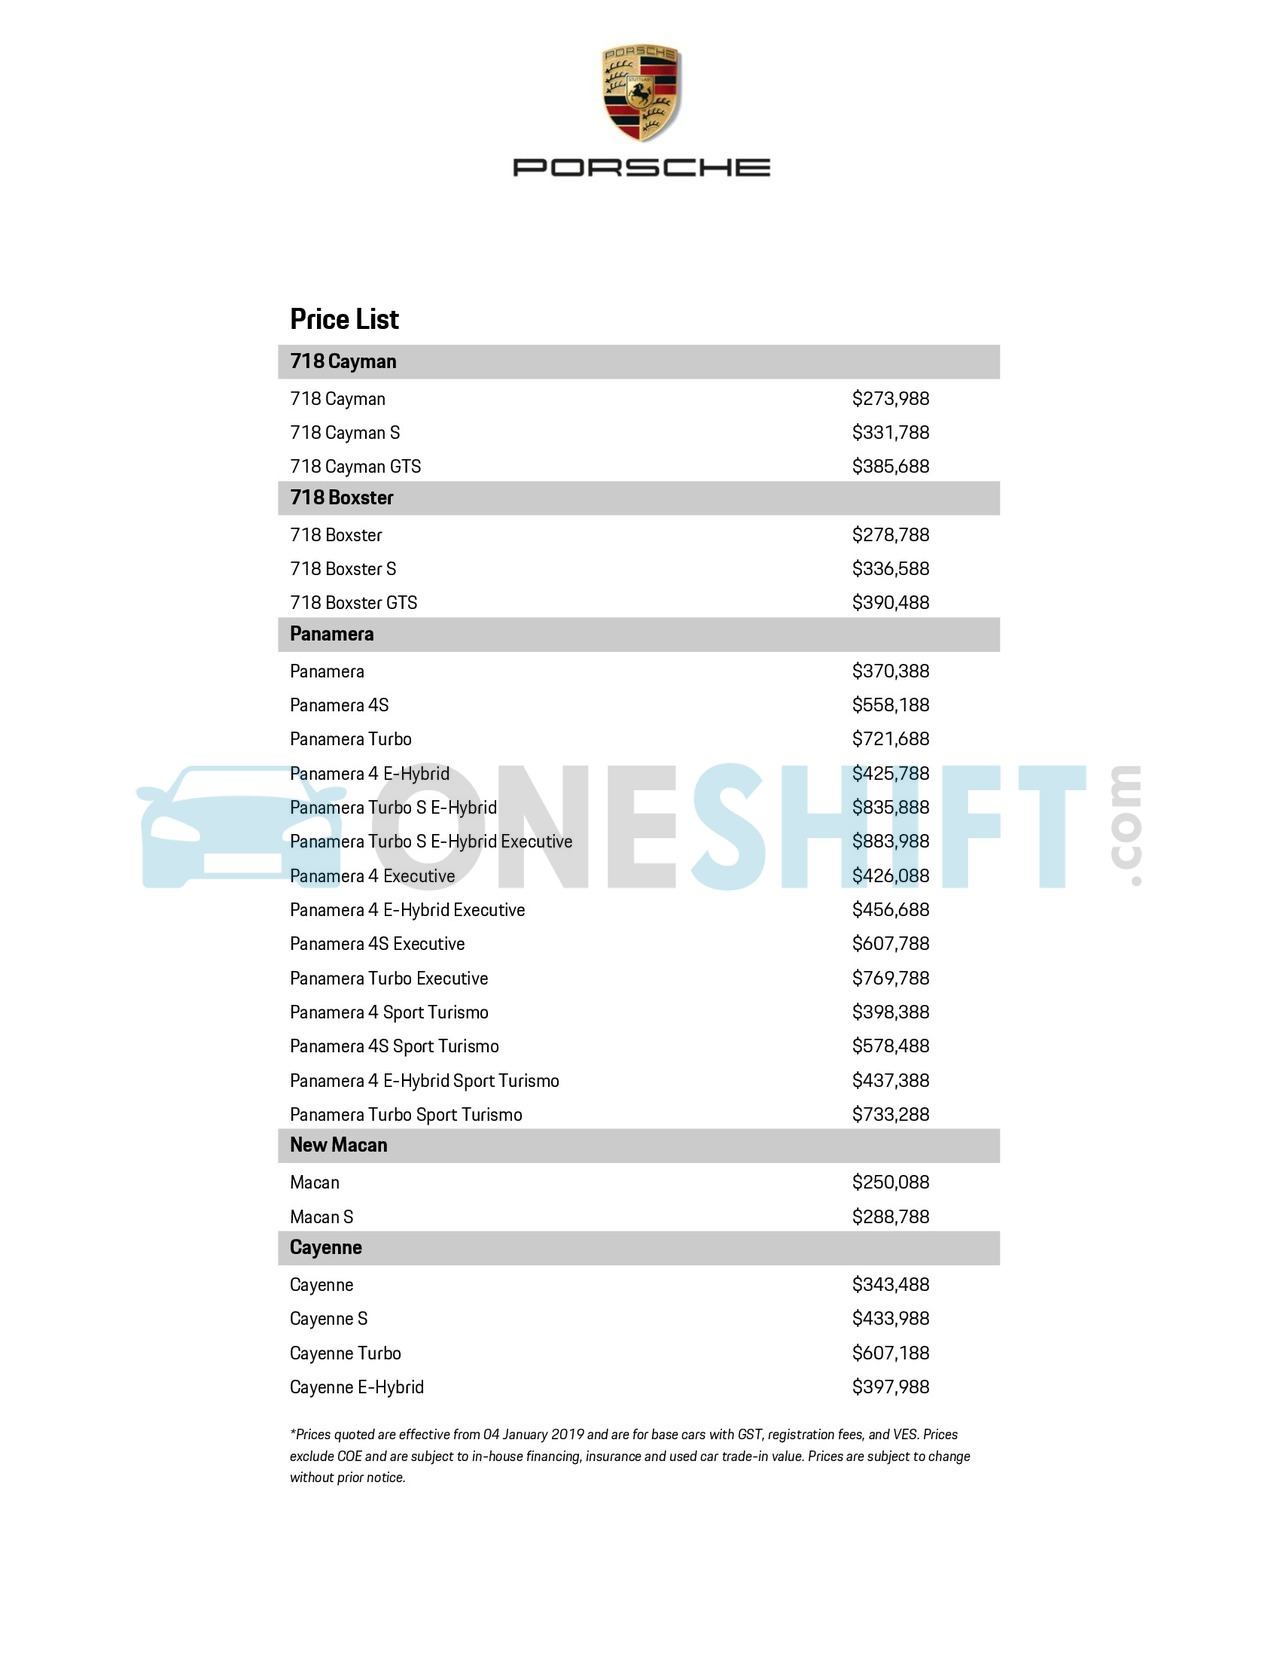 Porsche Singapore Printed Car Price List Oneshift Com